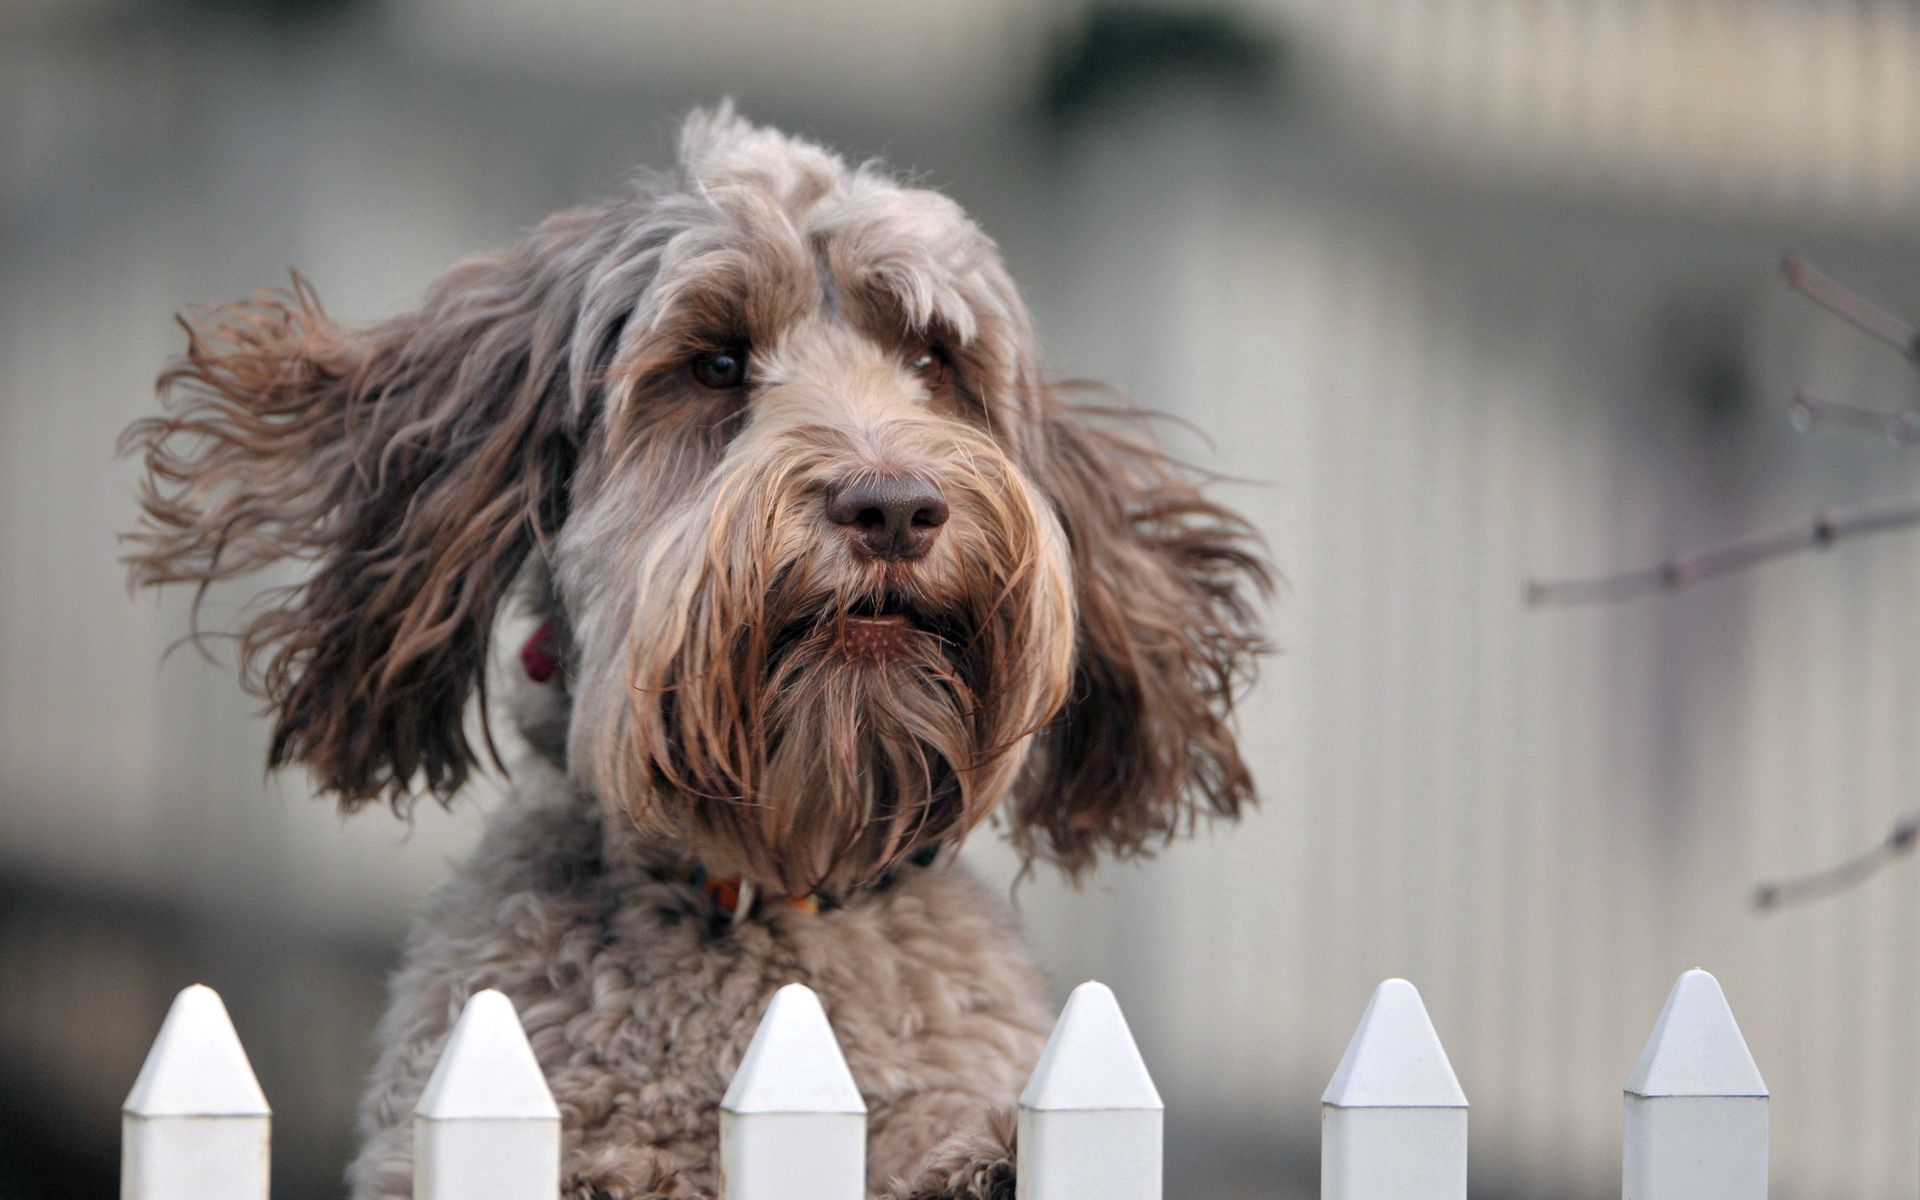 115968 download wallpaper Animals, Dog, Muzzle, Wind, Fence, Puppy screensavers and pictures for free